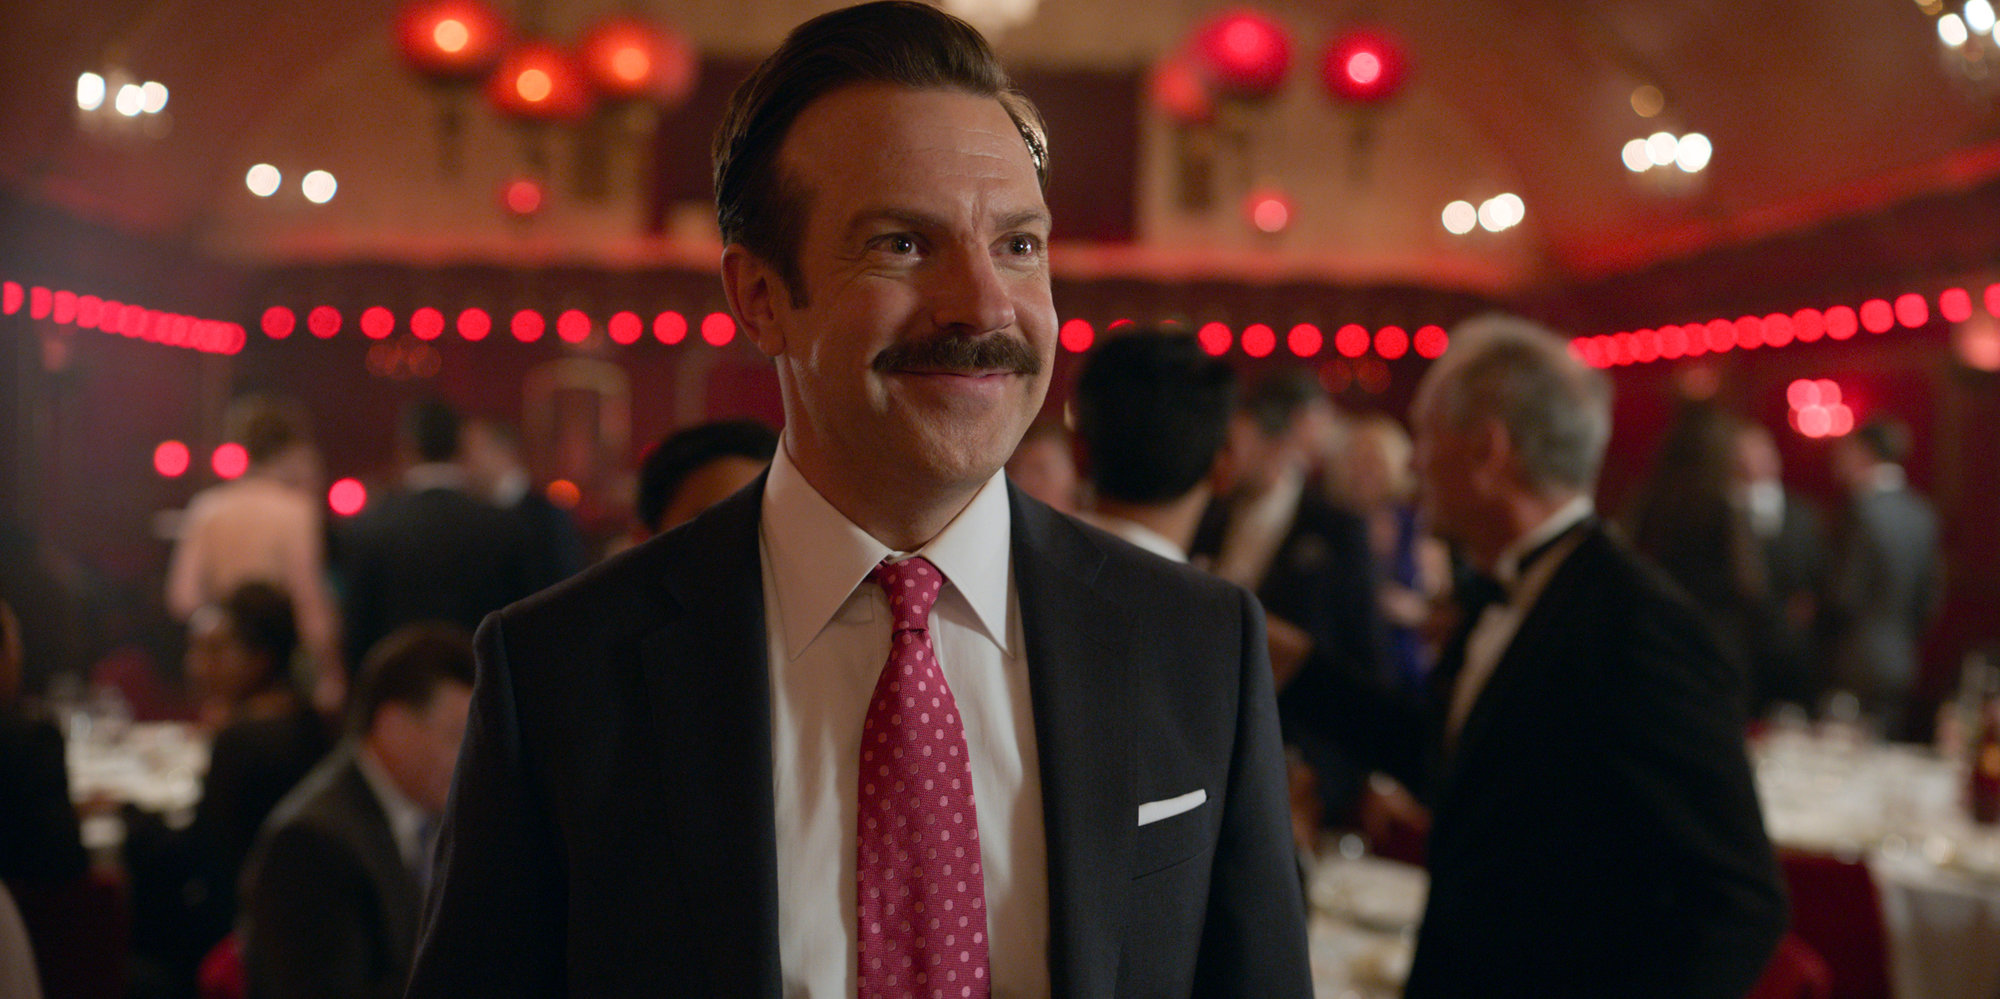 'Ted Lasso' season 2: Here's when the best Apple TV+ original series is returning